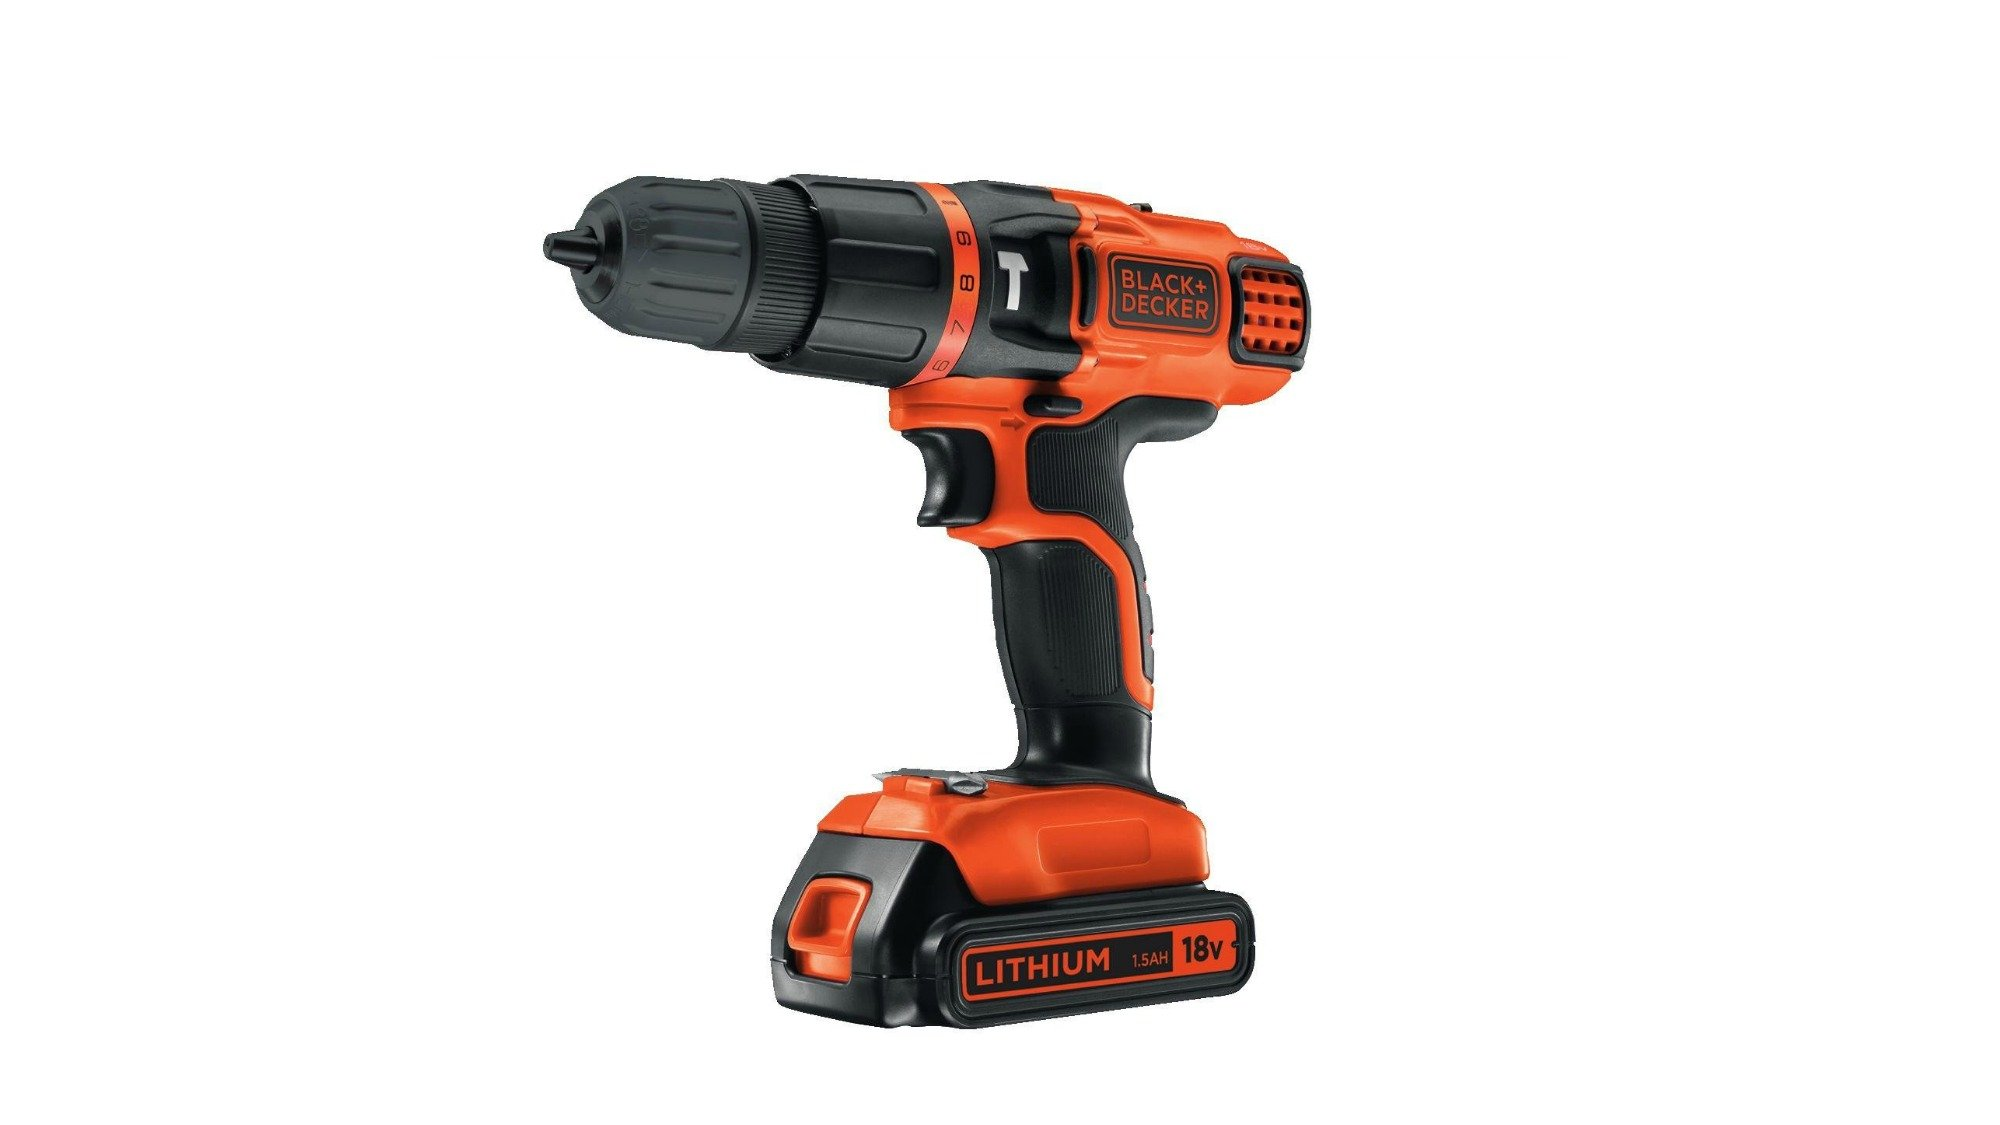 Best cordless drills: Drill drivers, hammer drills and SDS drills to